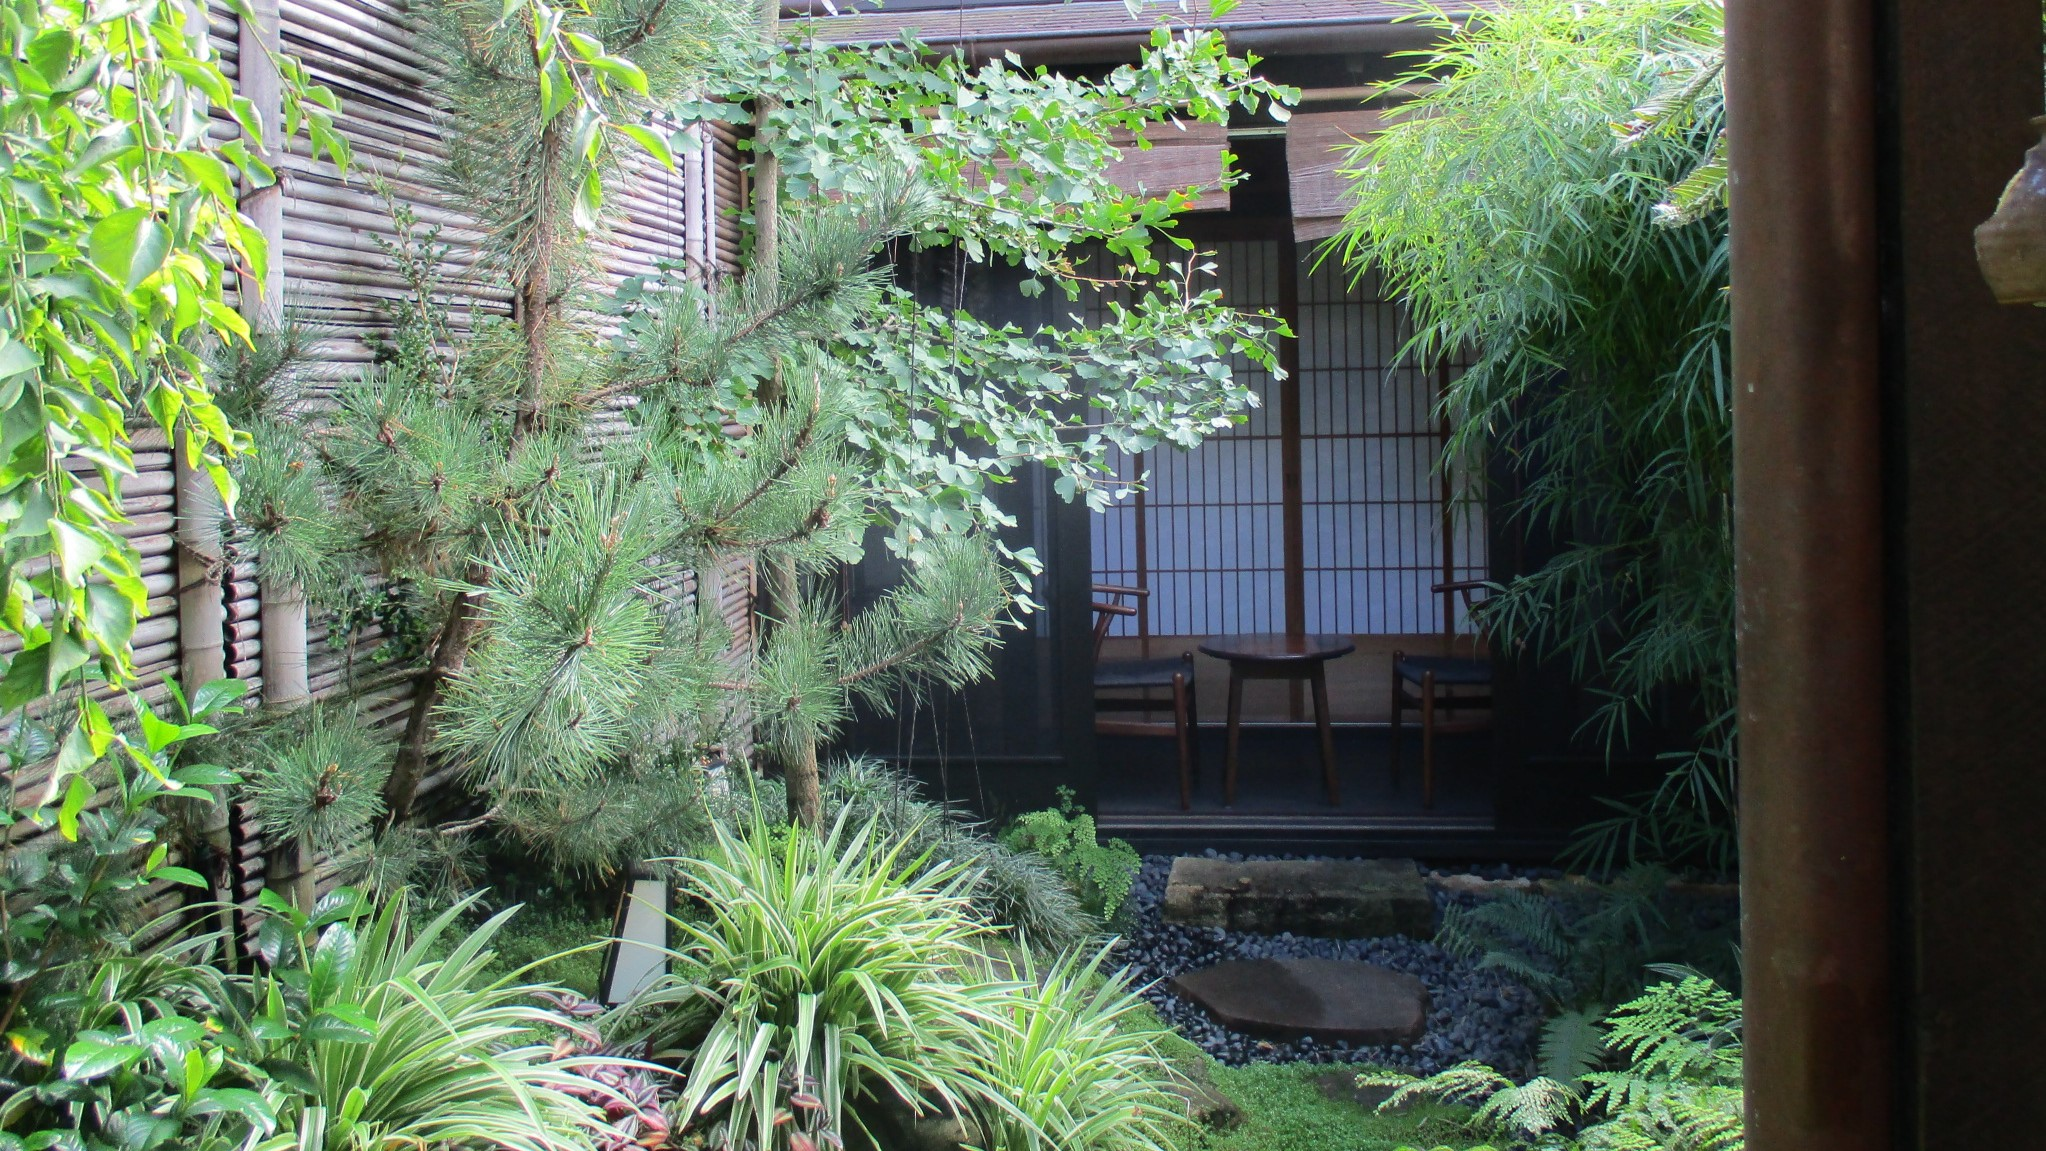 Ryokan Gojyuan Traditional Japanese Style Guest House